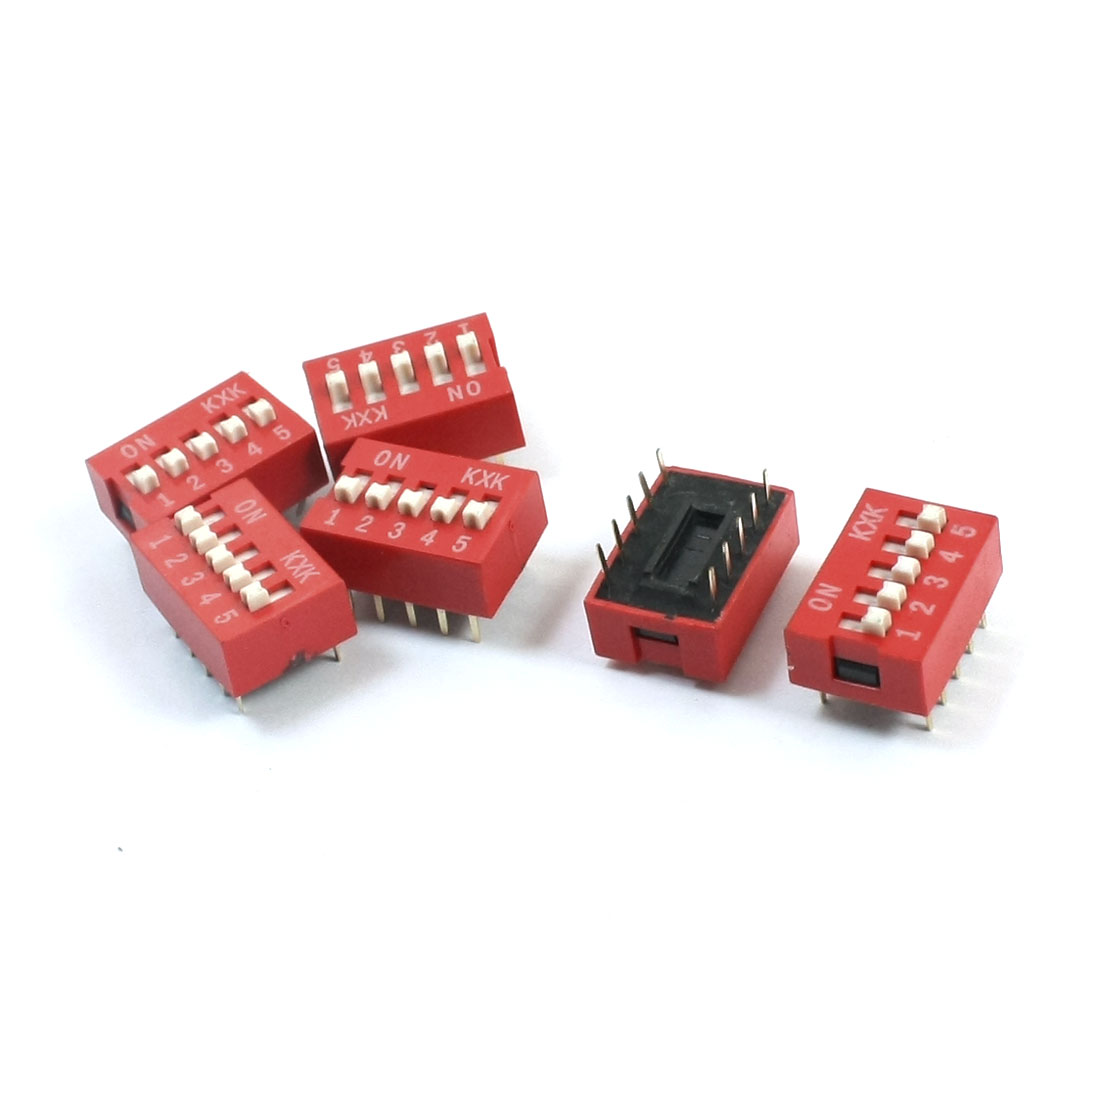 6Pcs Red Slide Type 2 Row 10 Pin Terminals 5 Positions 2.54mm Pitch DIP Key Switch